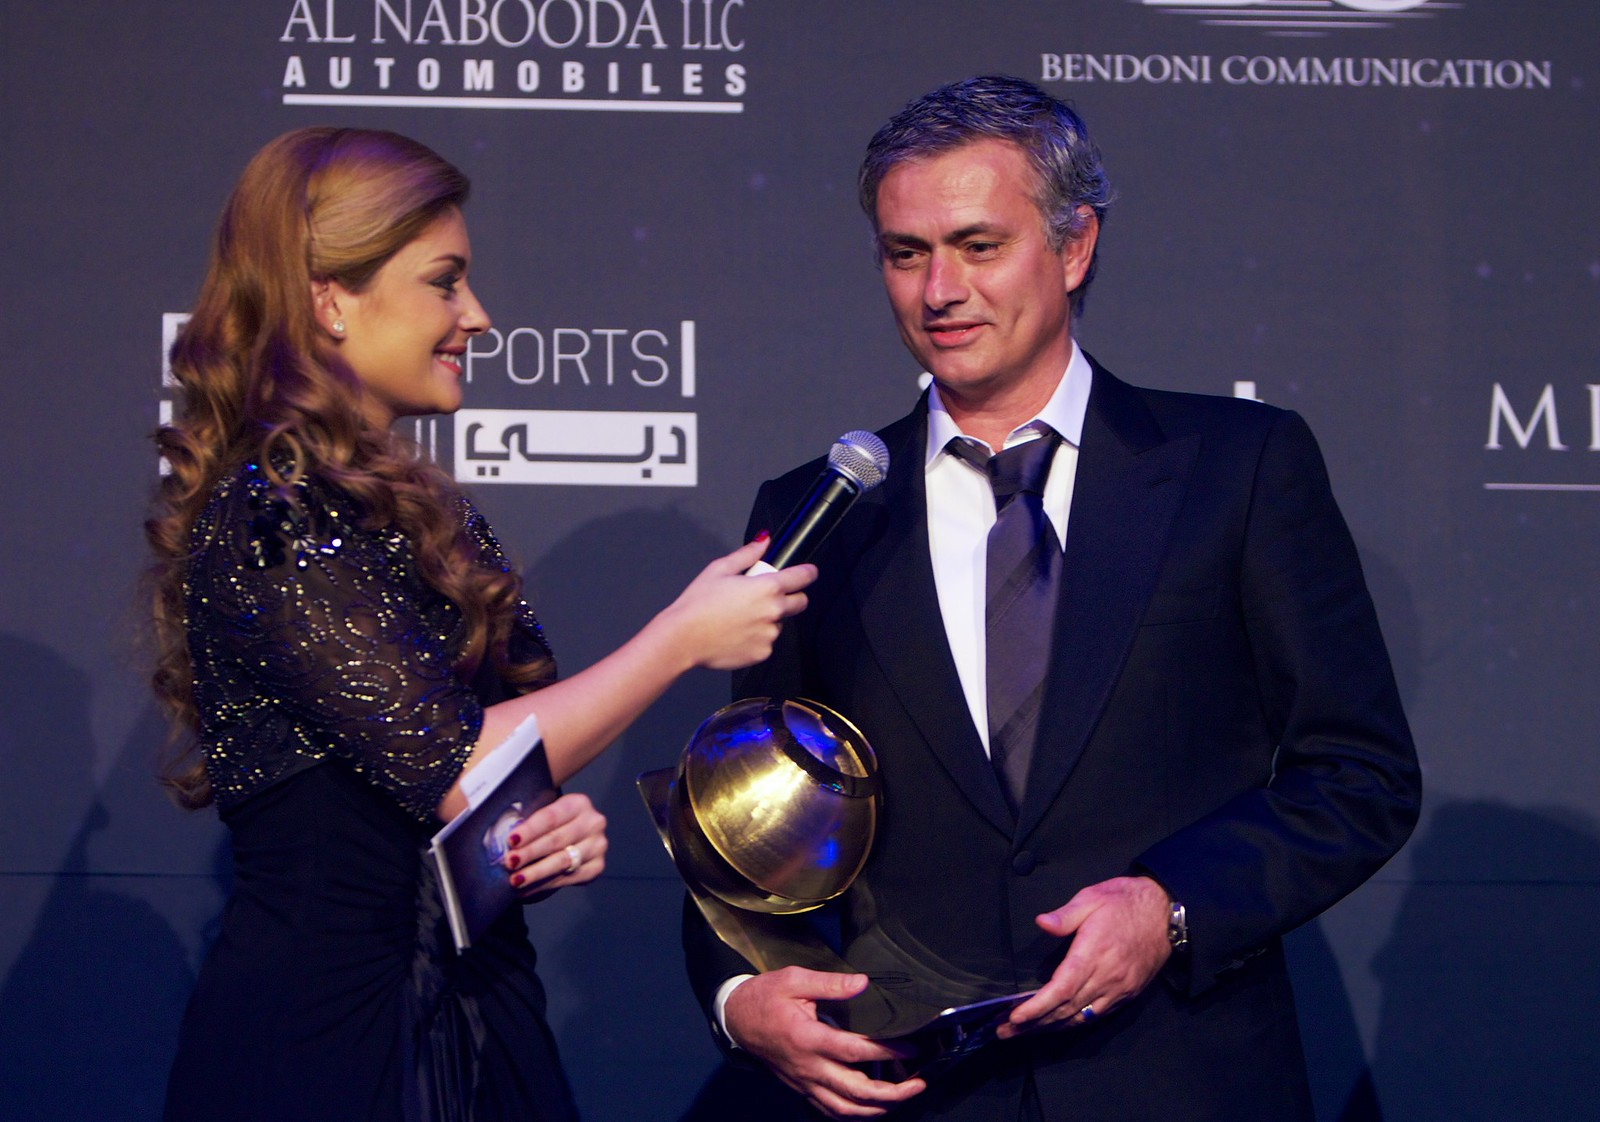 Josè Mourinho - Best Coach of the year Award